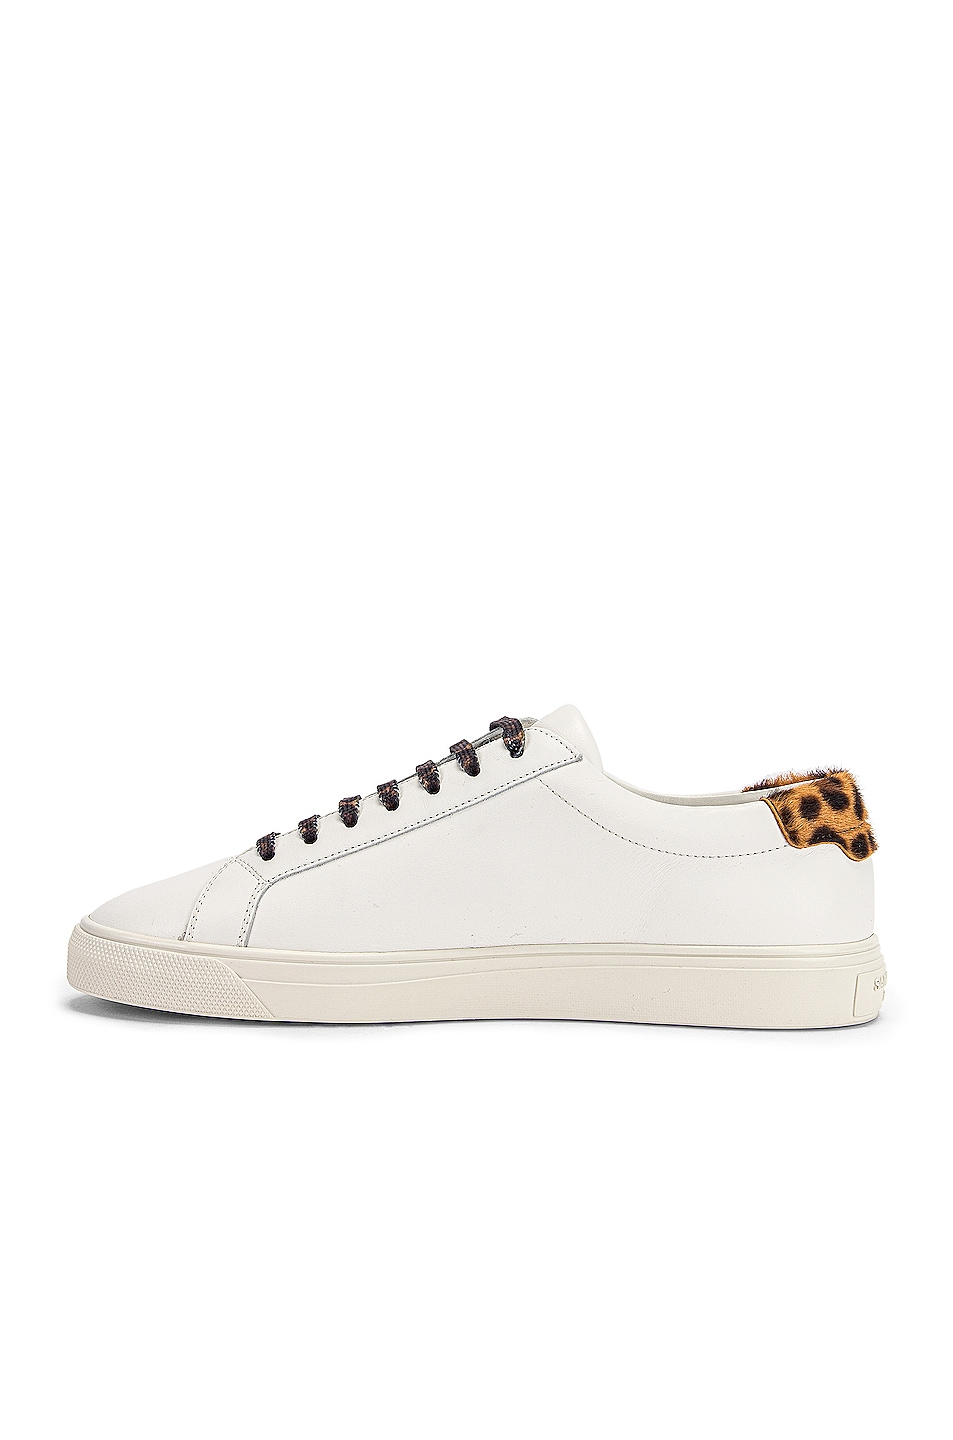 Image 5 of Saint Laurent Low Top Andy Sneakers in White & Natural